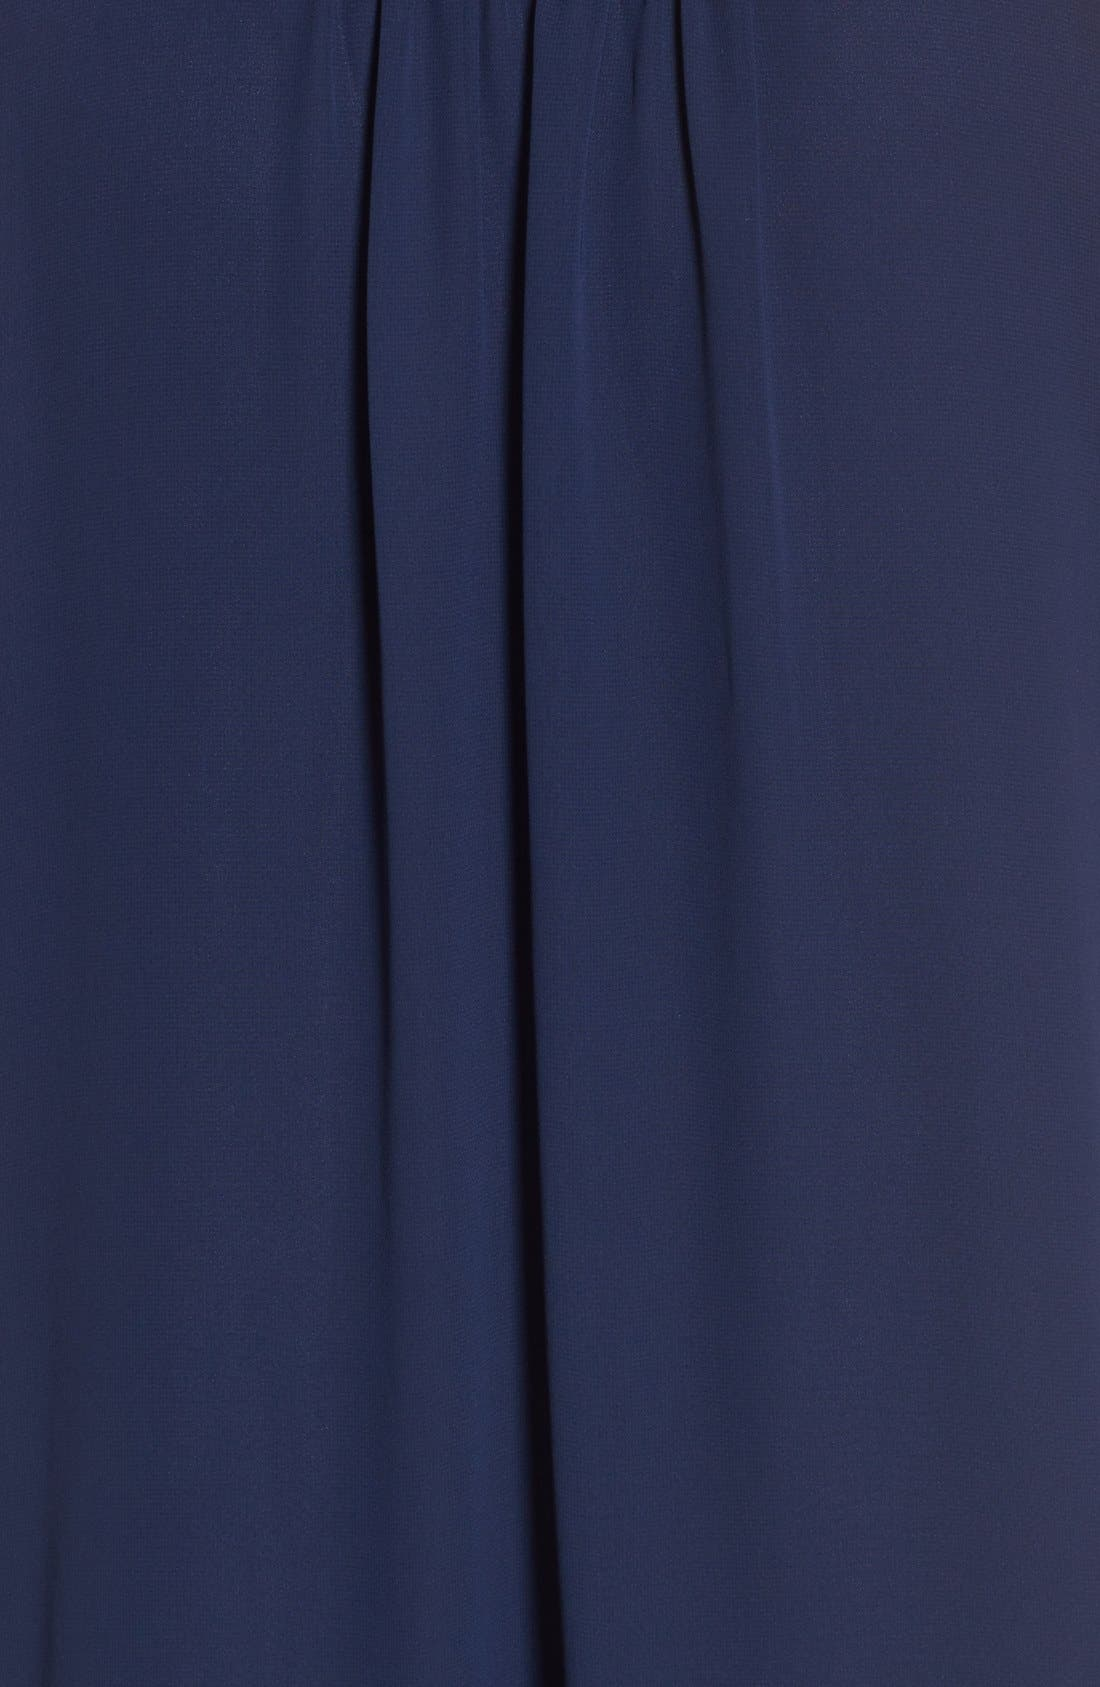 Tie Neck Shift Dress,                             Alternate thumbnail 3, color,                             410